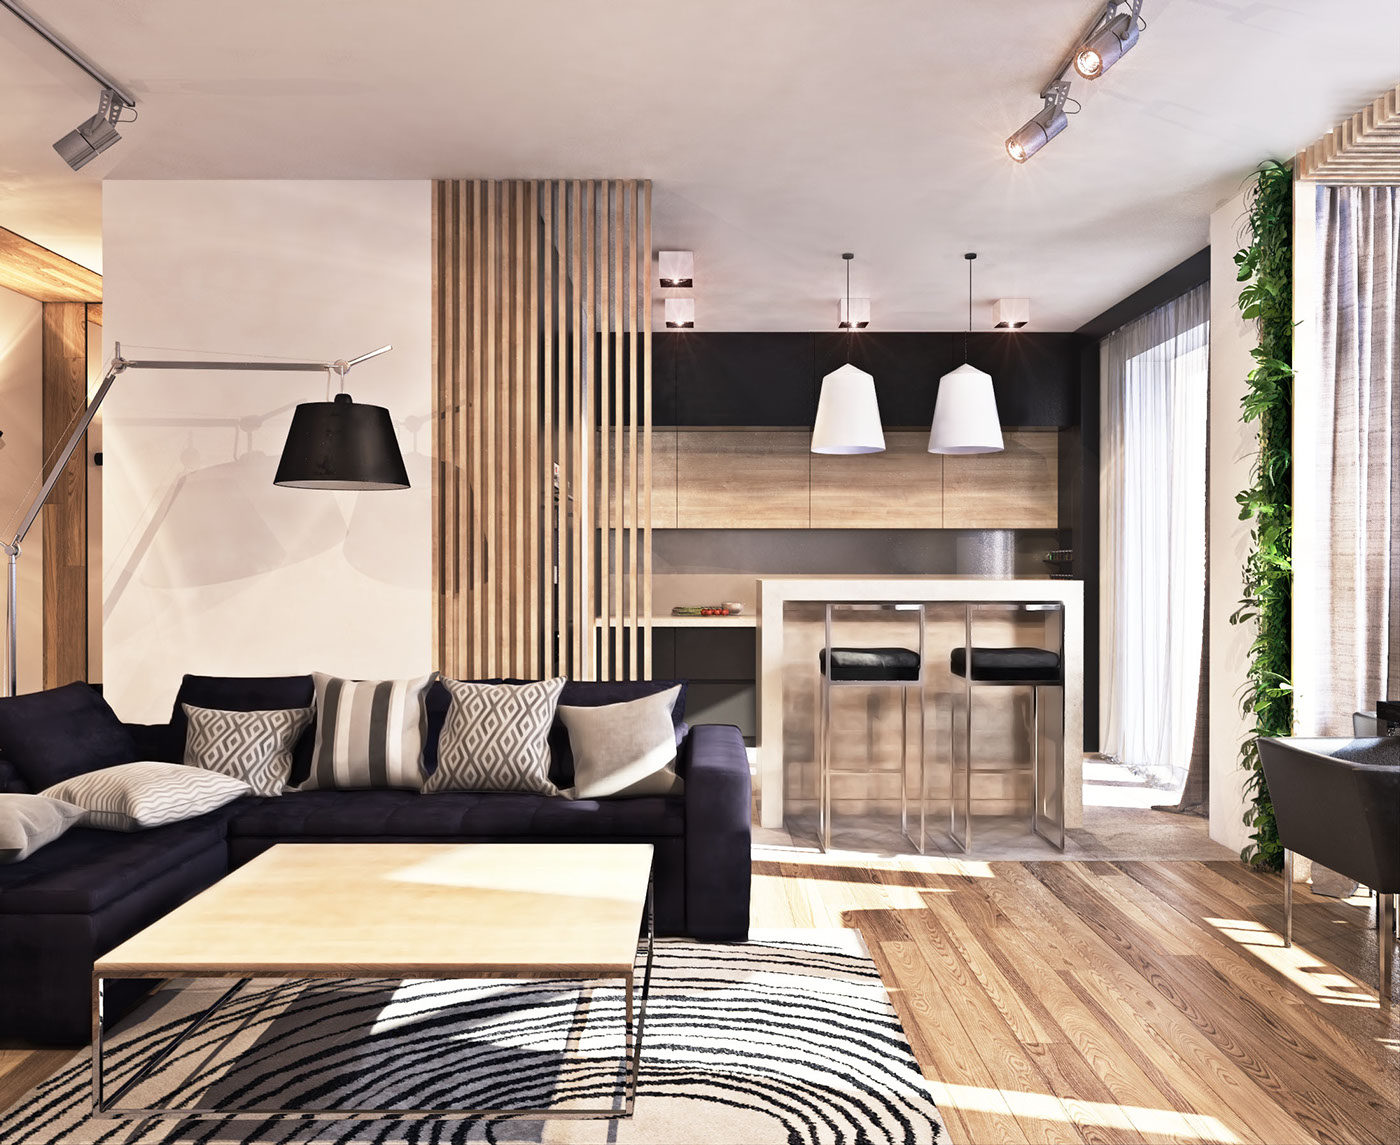 Make the most of the space in your small living room with these furniture and decorating ideas to revisit this article, visit my profile, thenview saved stories. A Contemporary Apartment with Lots of Open Space